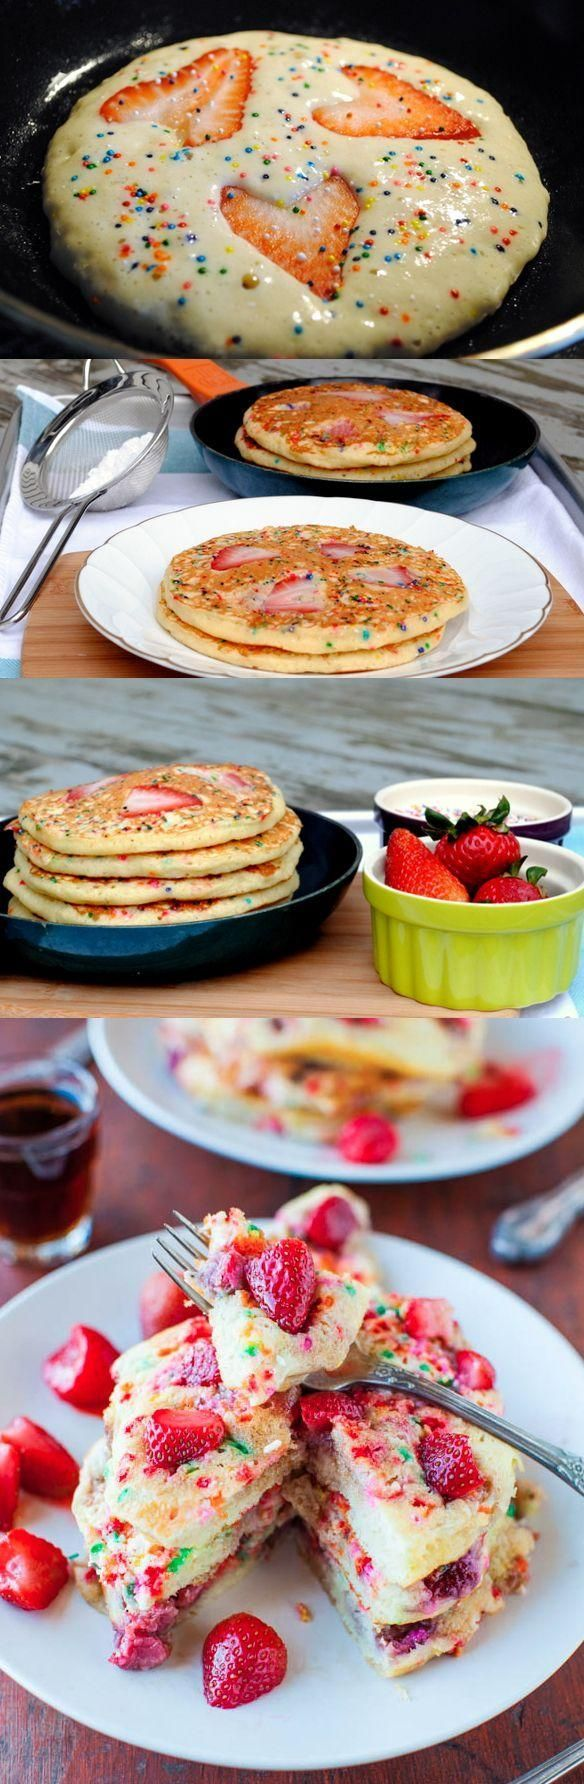 This looks yummy AND fun A sweet Valentine's breakfast -- Strawberry Sprinkle Funfetti Pancakes -- #February14 #ValentinesDay #MasterCook